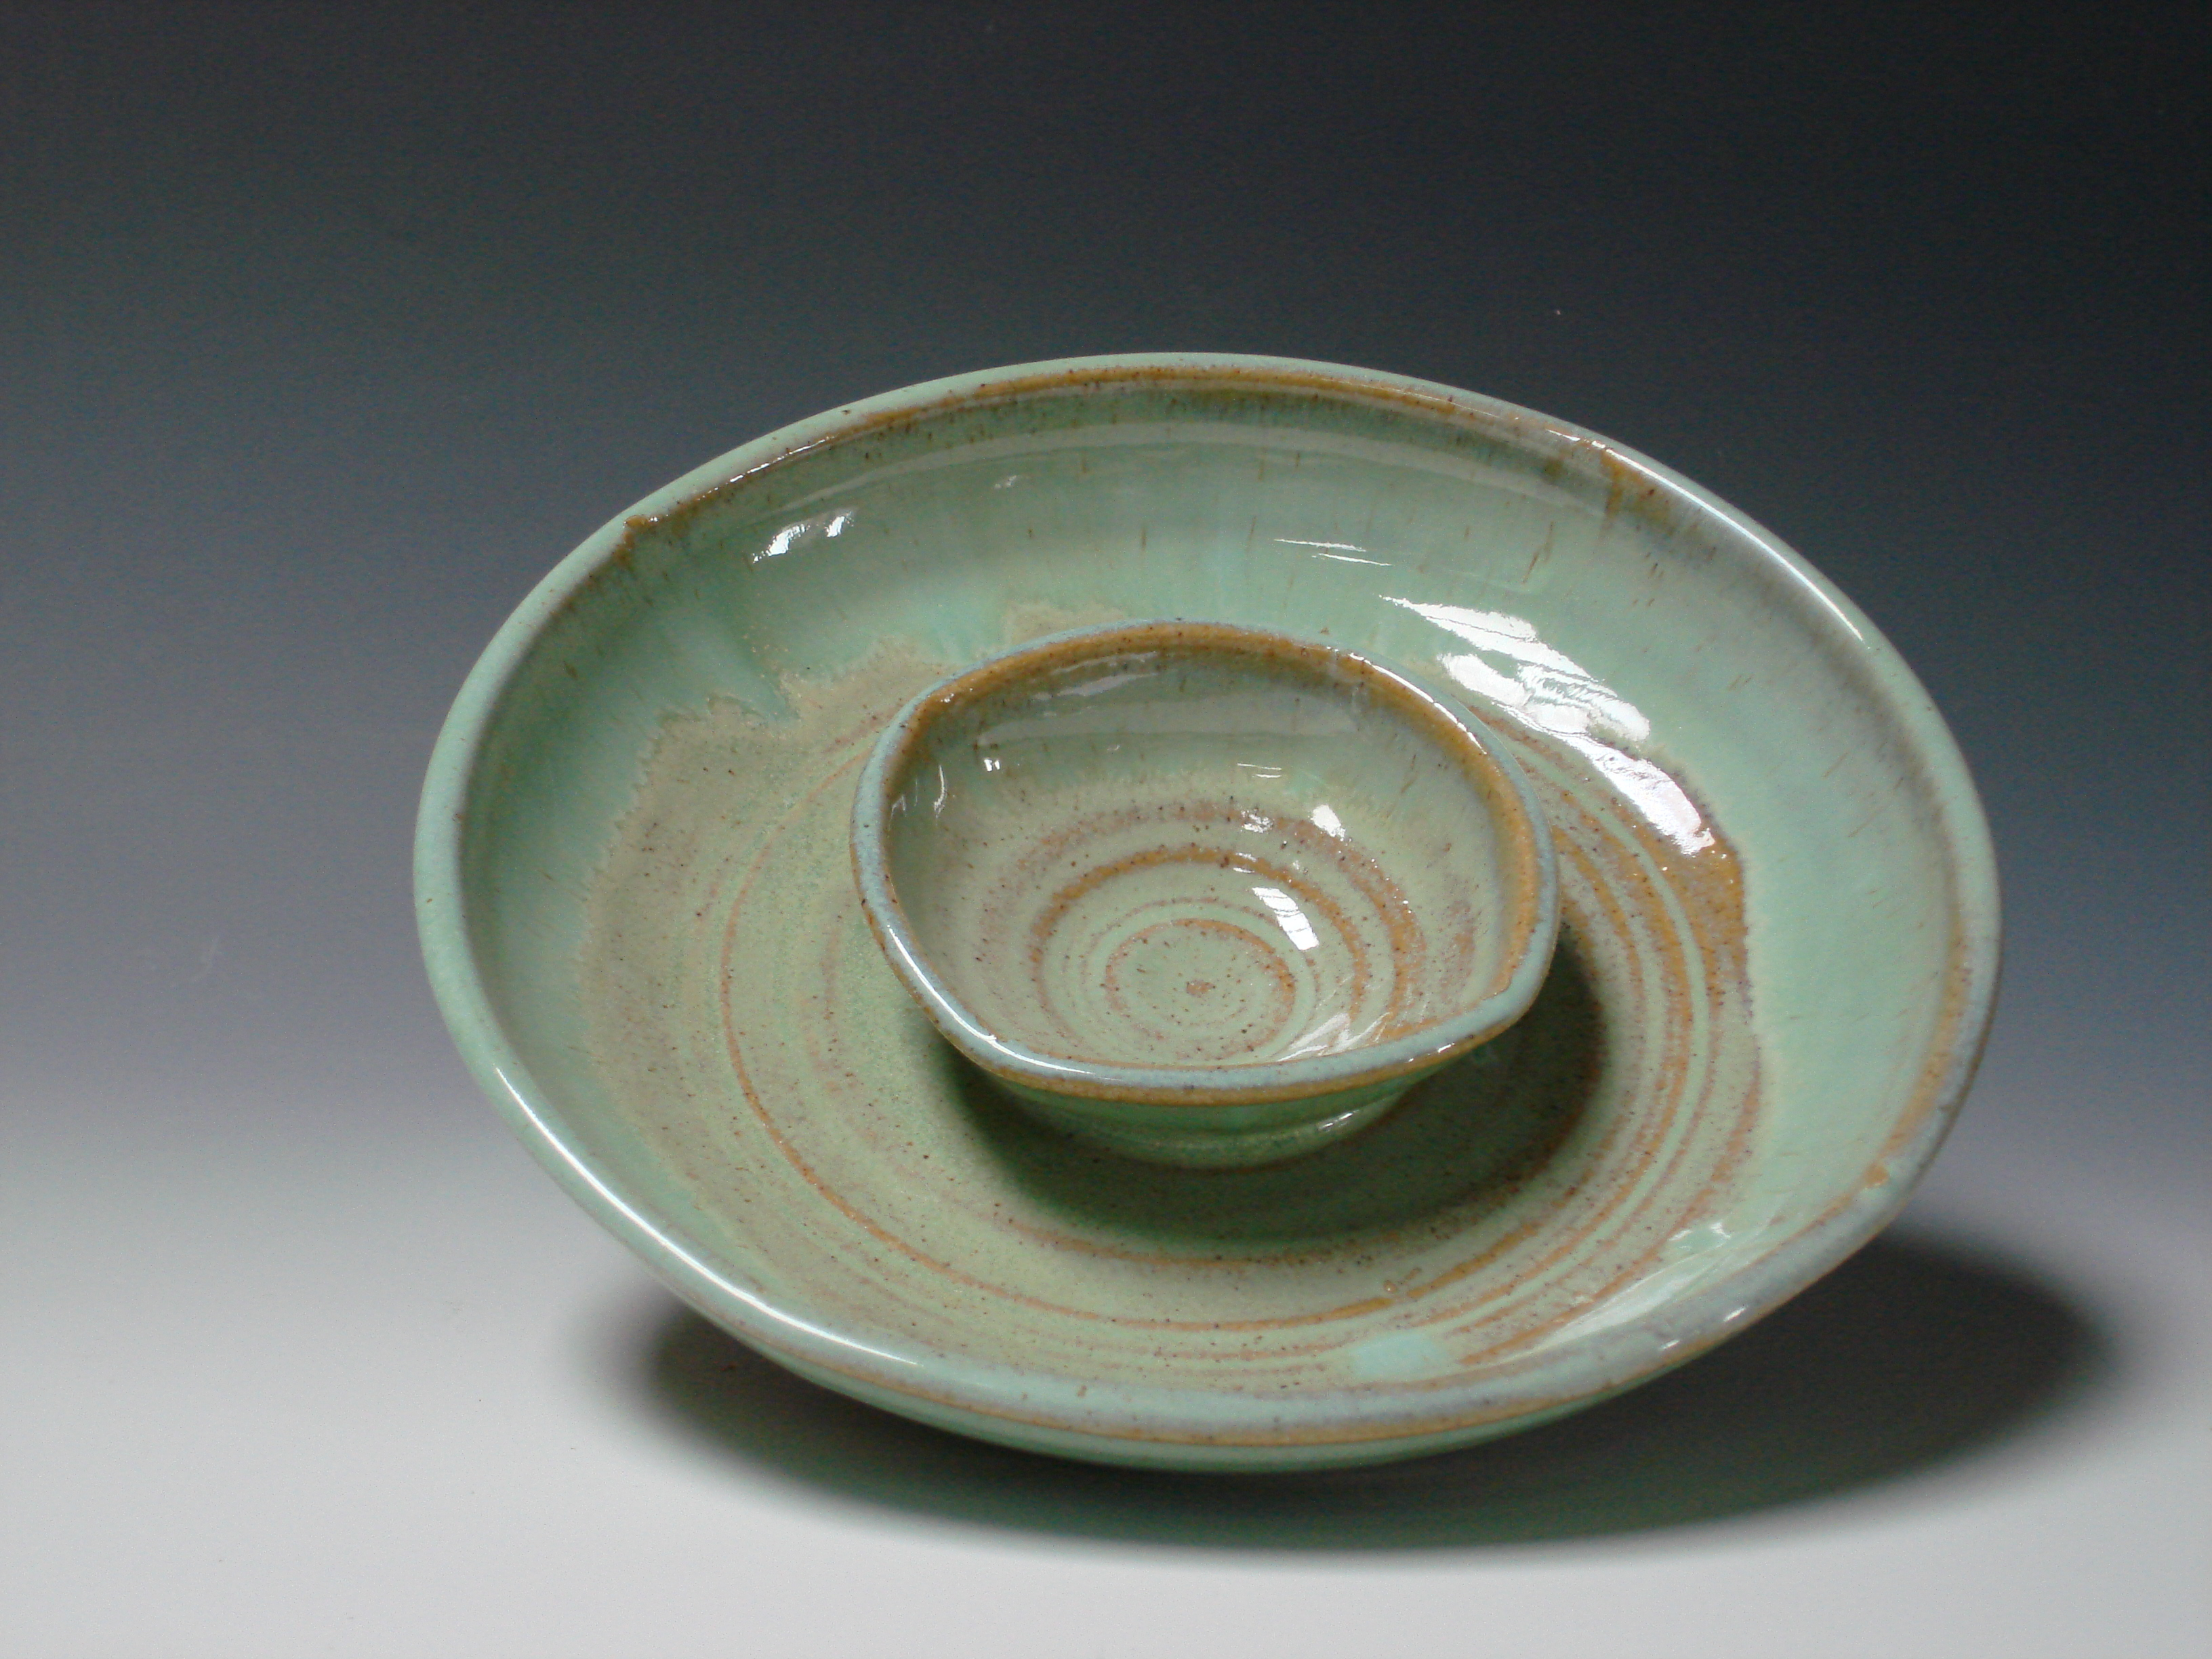 Olive dish/dip - Green